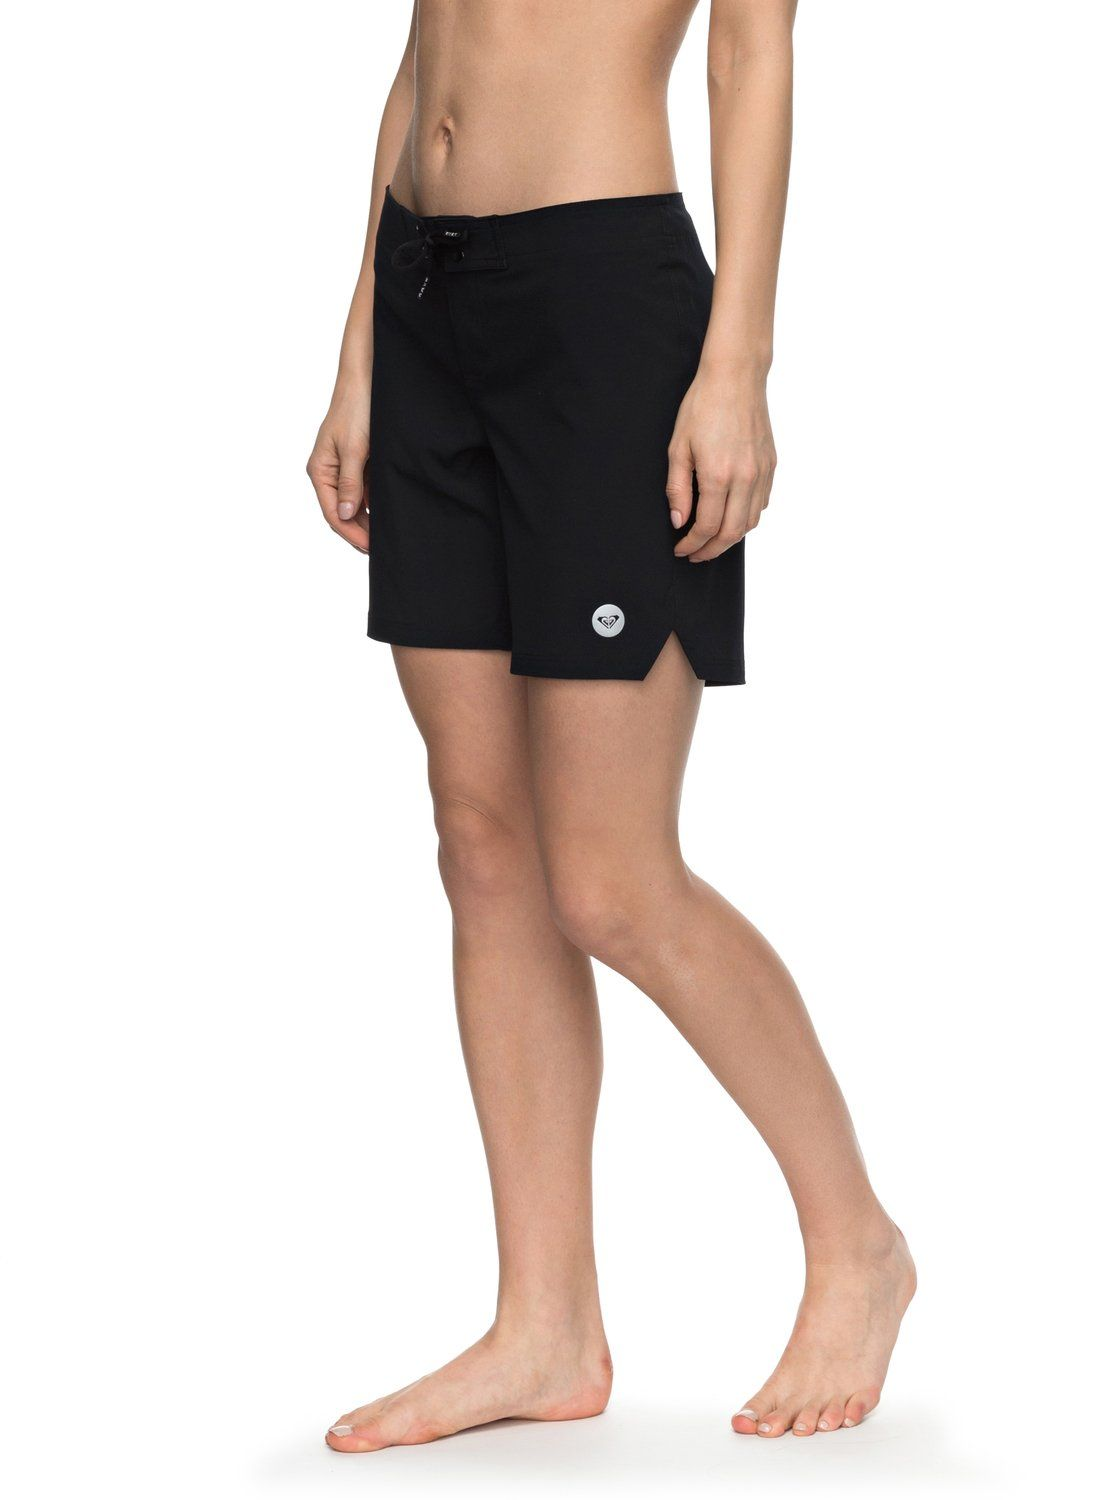 f97037dae7 Roxy Women's To Dye 7 BoardShorts (Anthracite Black) | Products ...